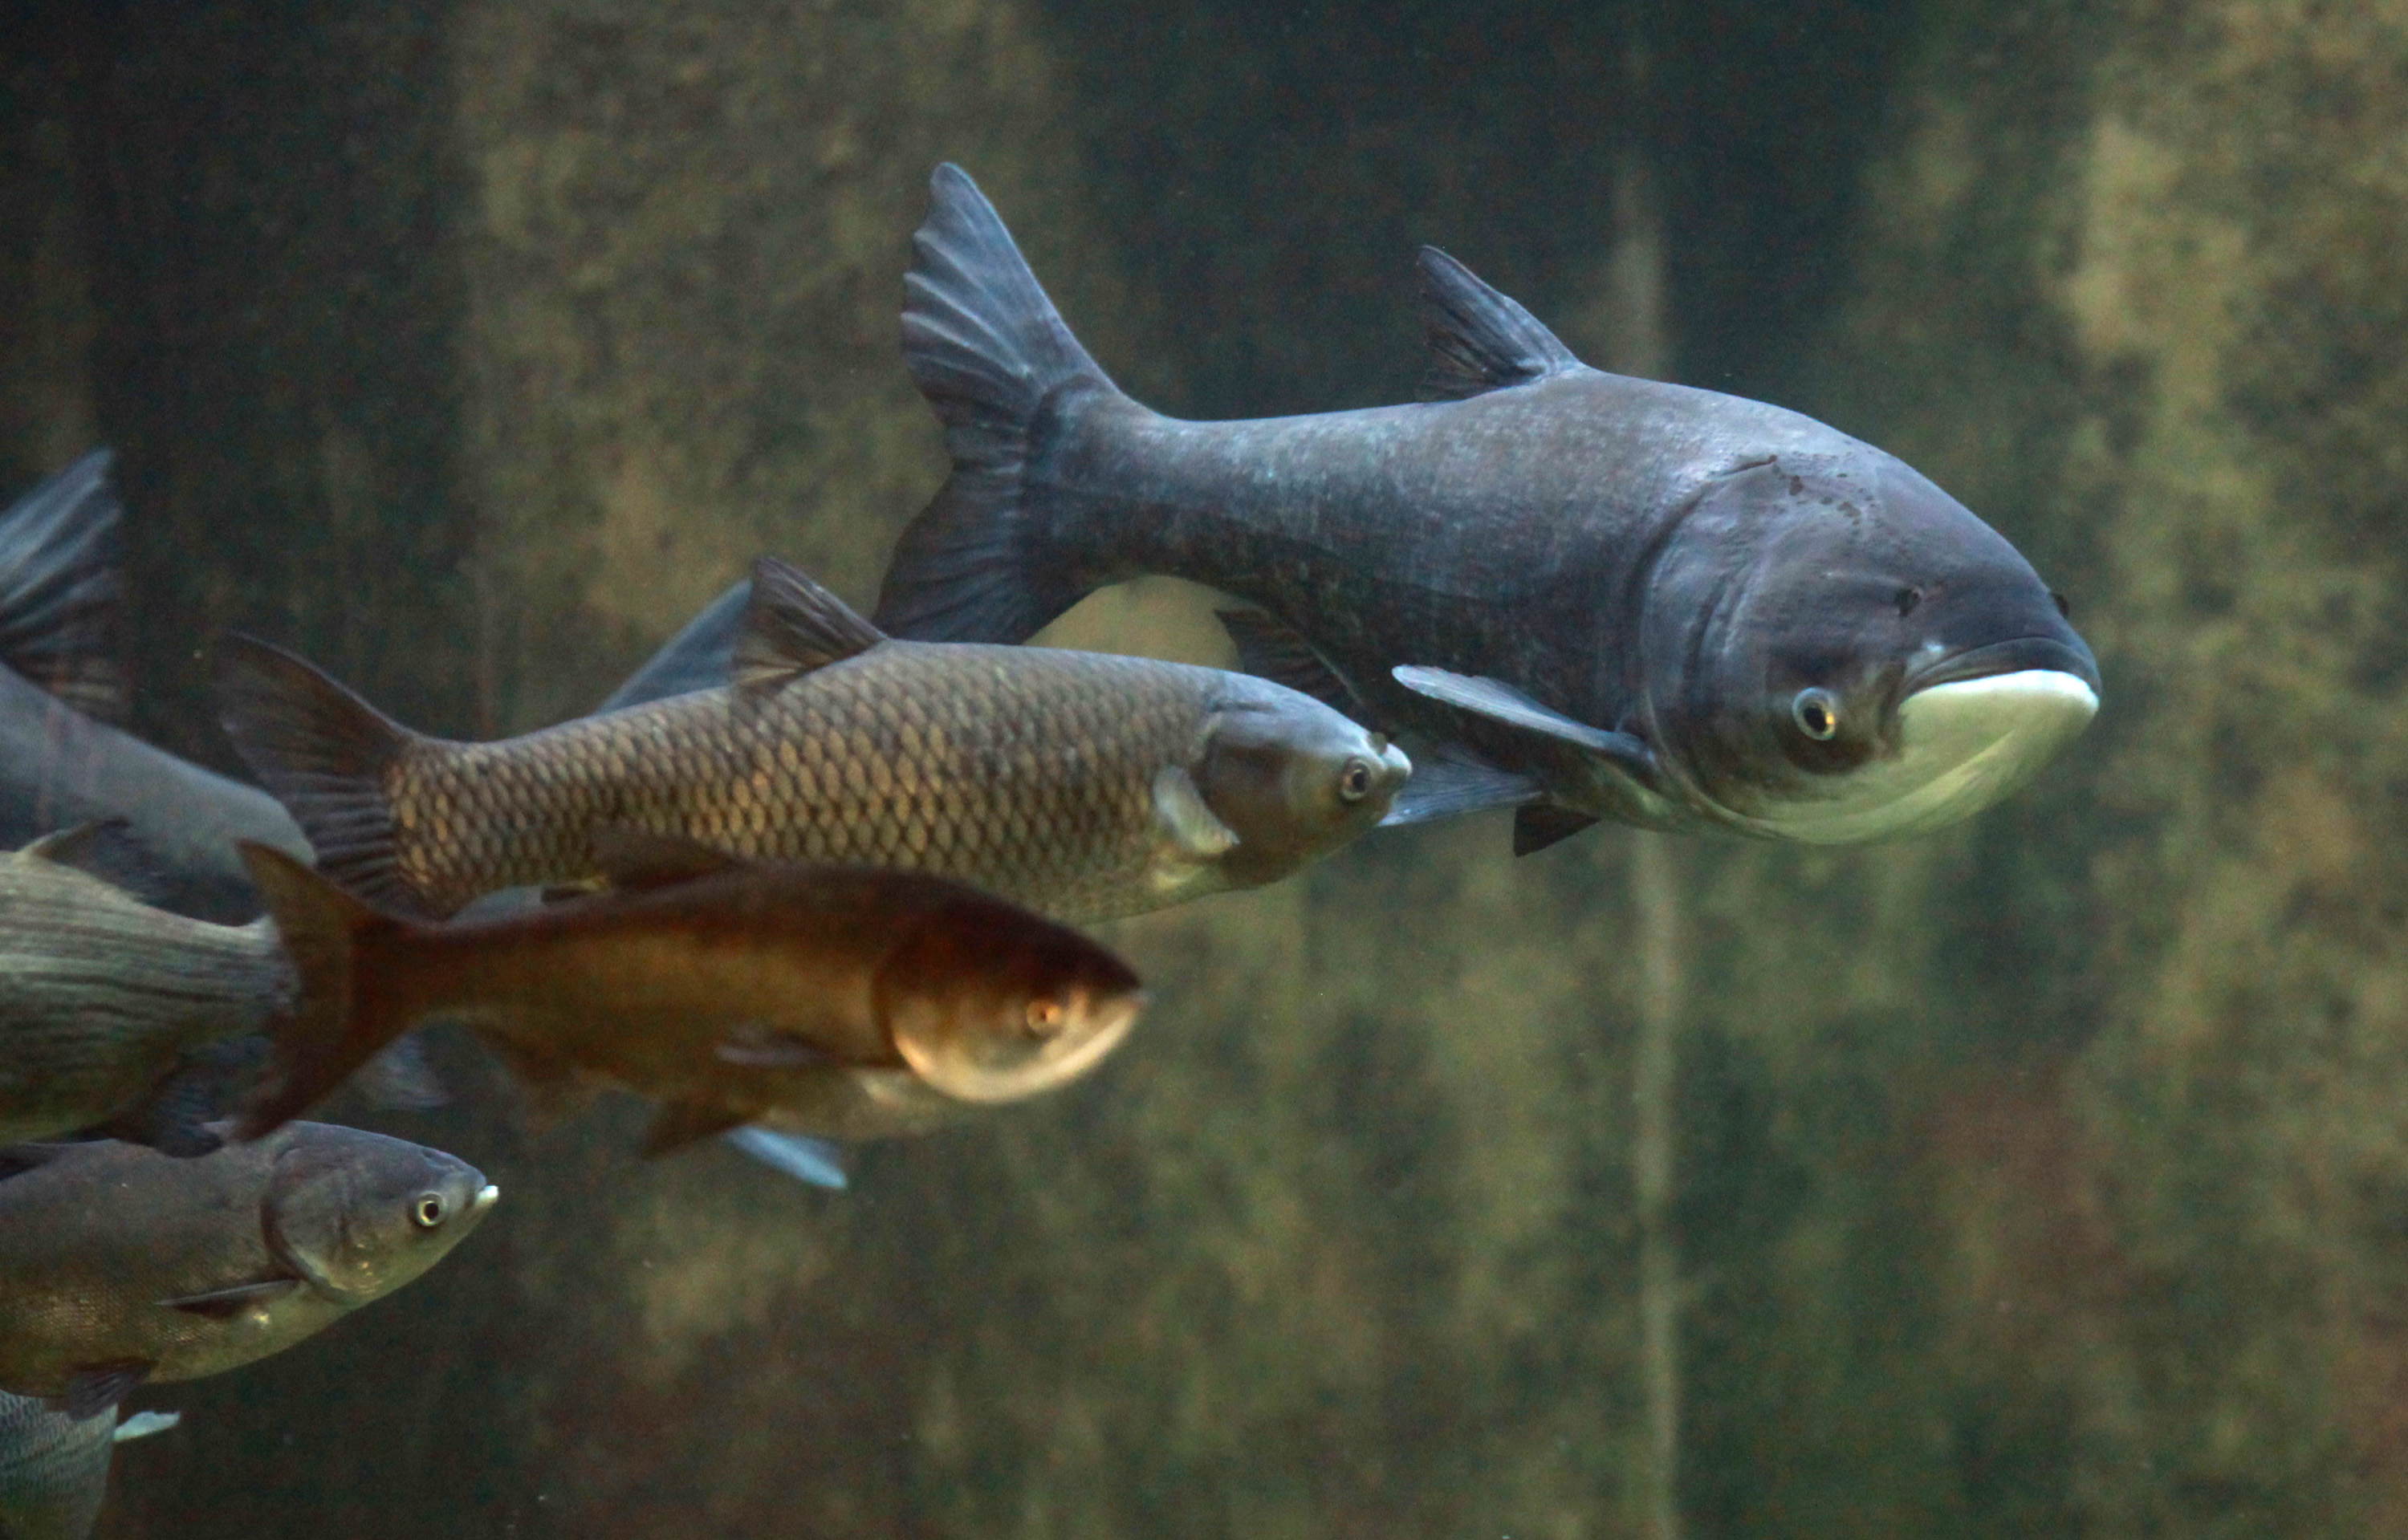 An Asian Bighead Carp swims in the Great Lakes Invasive Species tank at Chicago's Shedd Aquarium on Jan. 12.